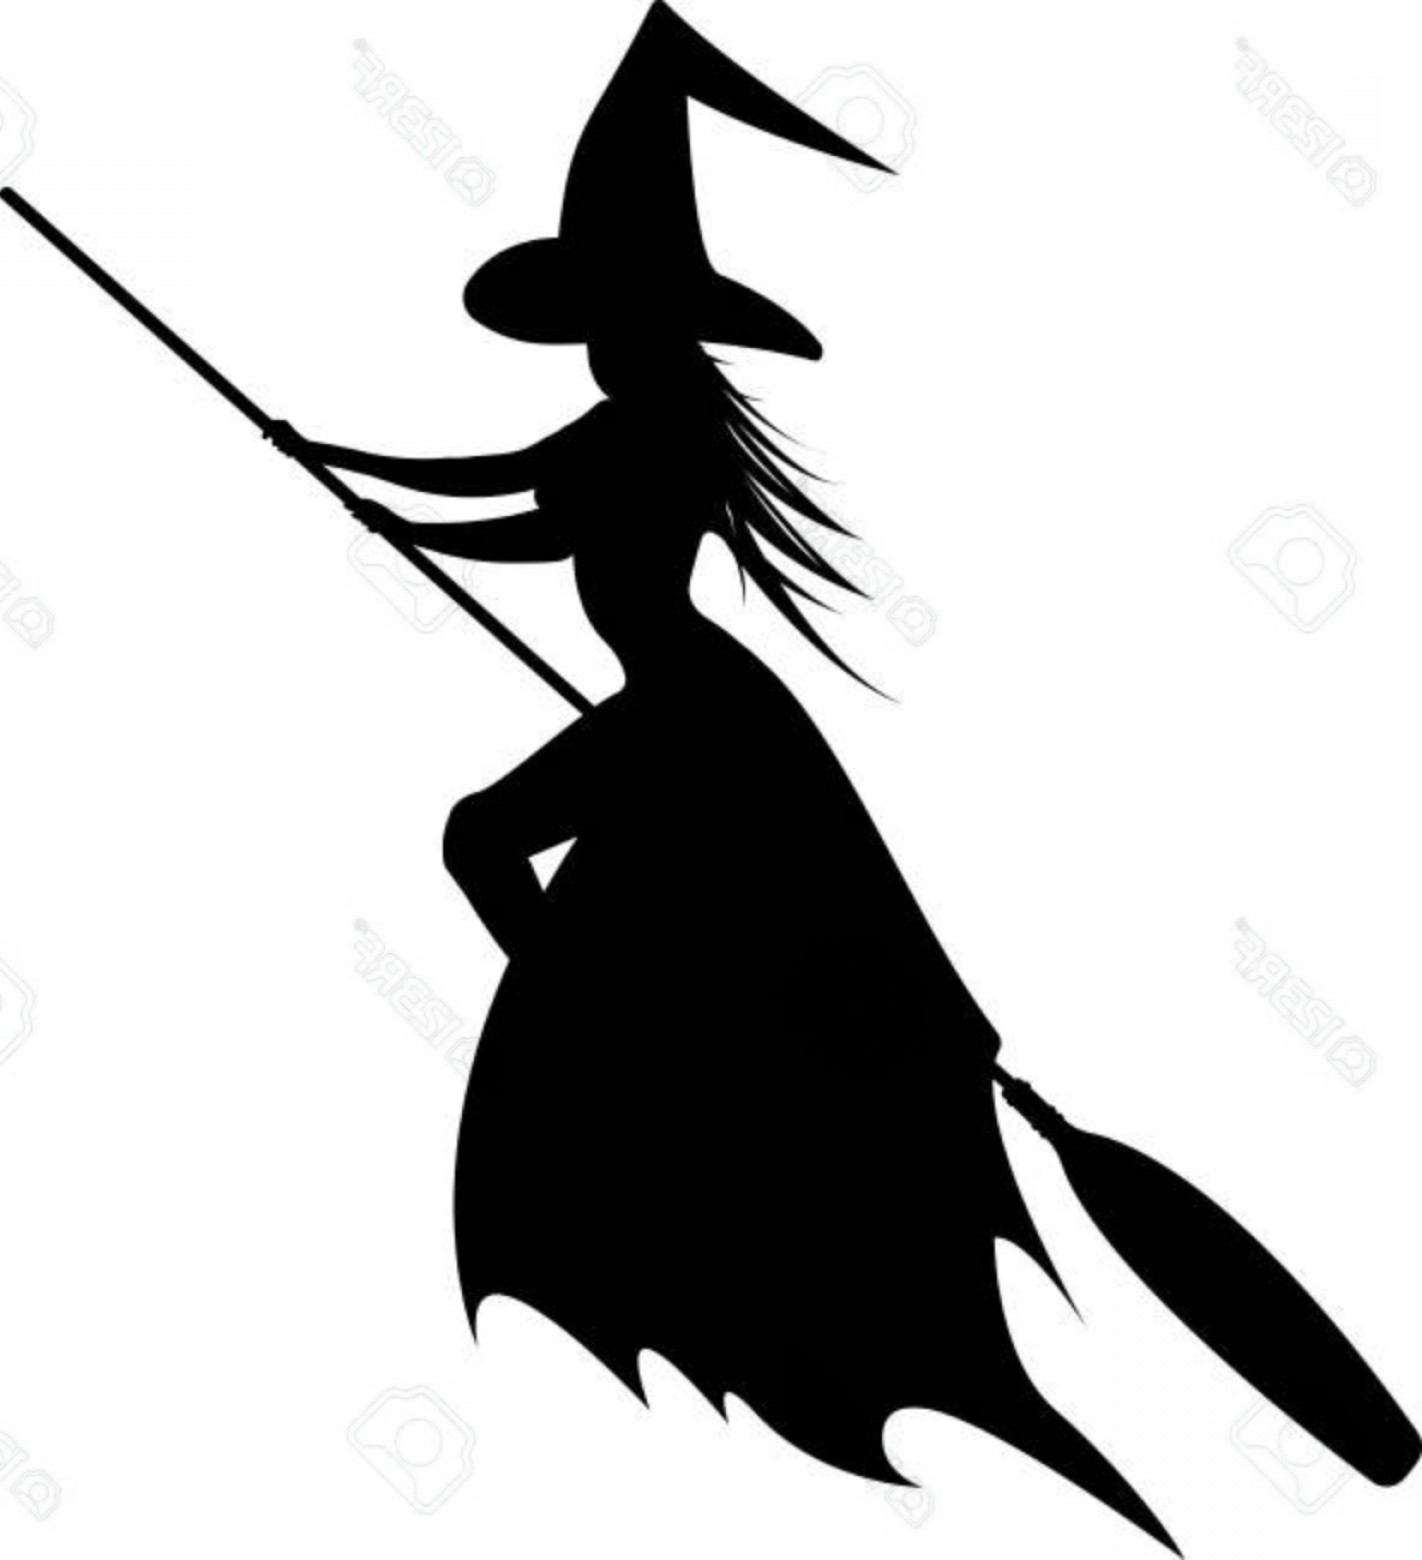 Photostock Vector Silhouette Of The Flying Witch Vector Illustration.